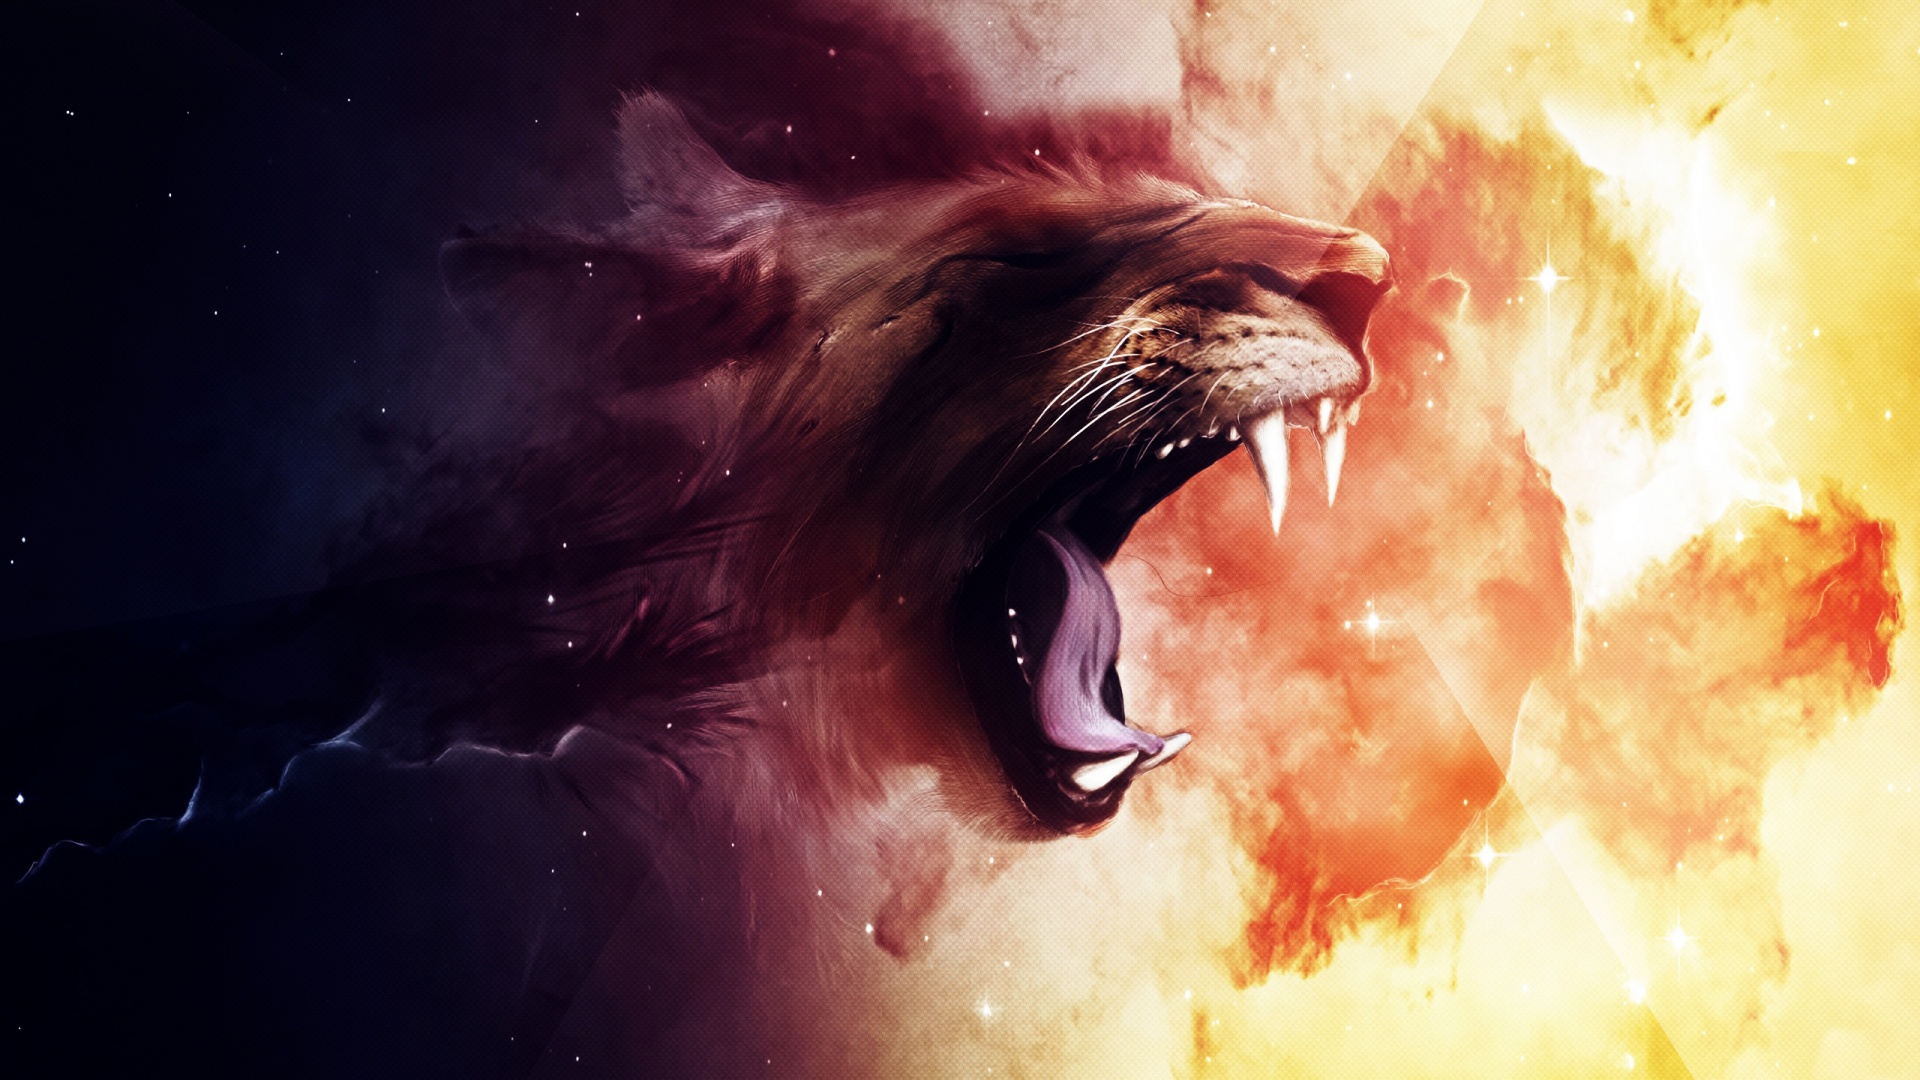 Roaring Lion Wallpapers In Jpg Format For Free Download